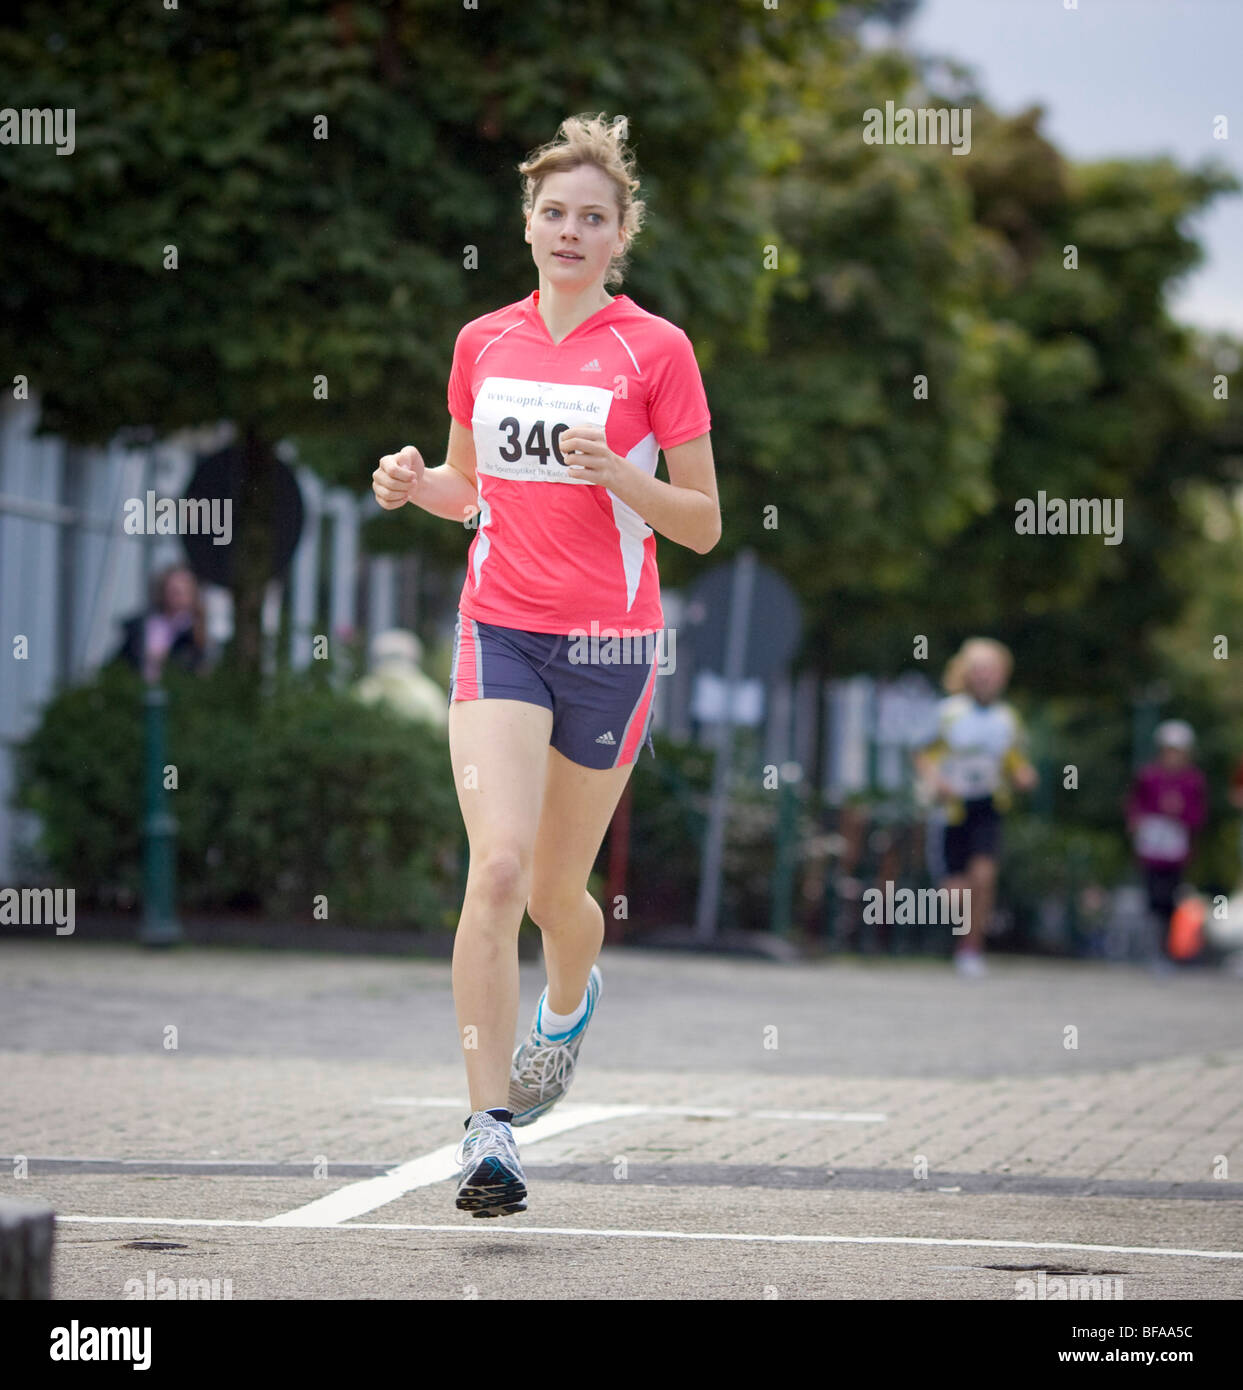 City run through Radevormwald . - Stock Image